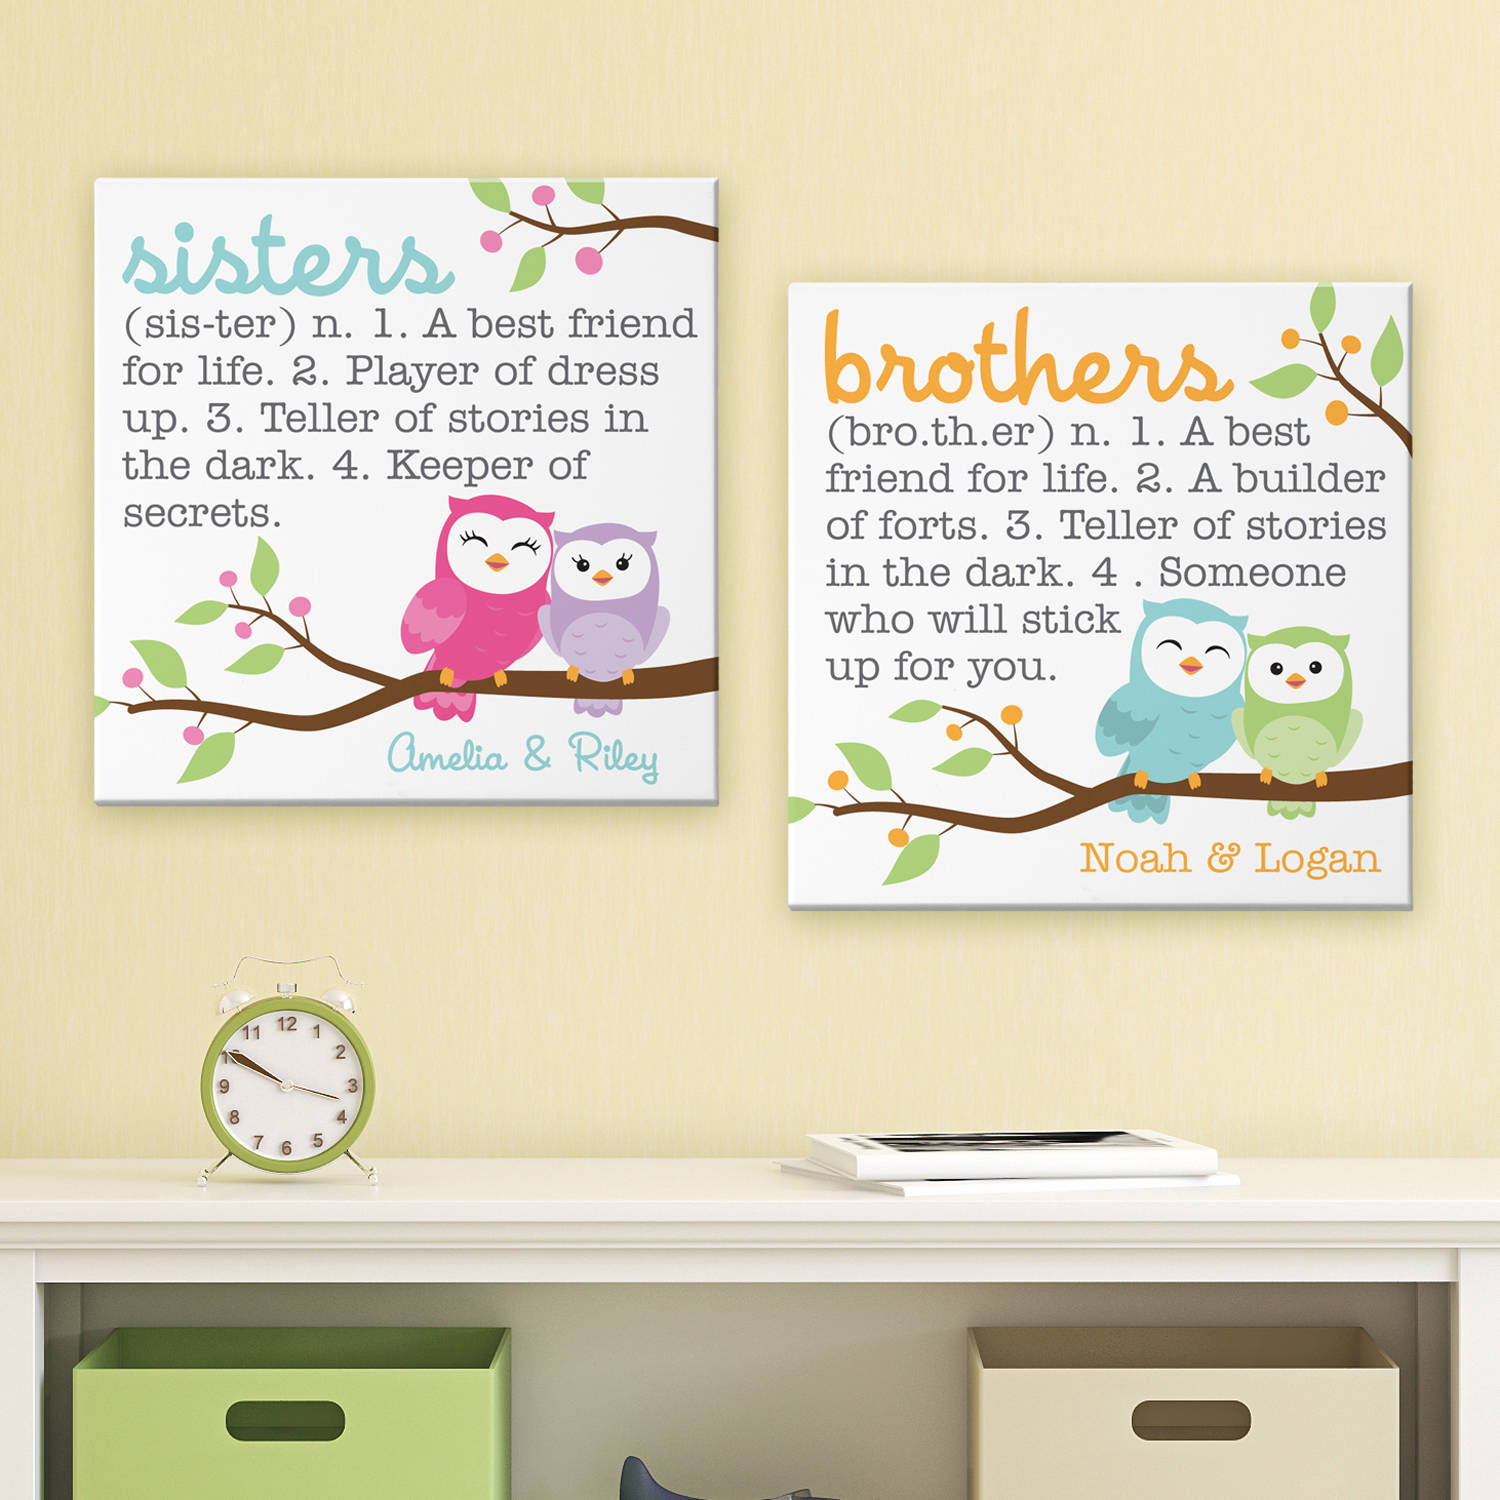 Personalized Sibling Meaning Canvas 11x11-Avilable in Brothers and Sisters Designs